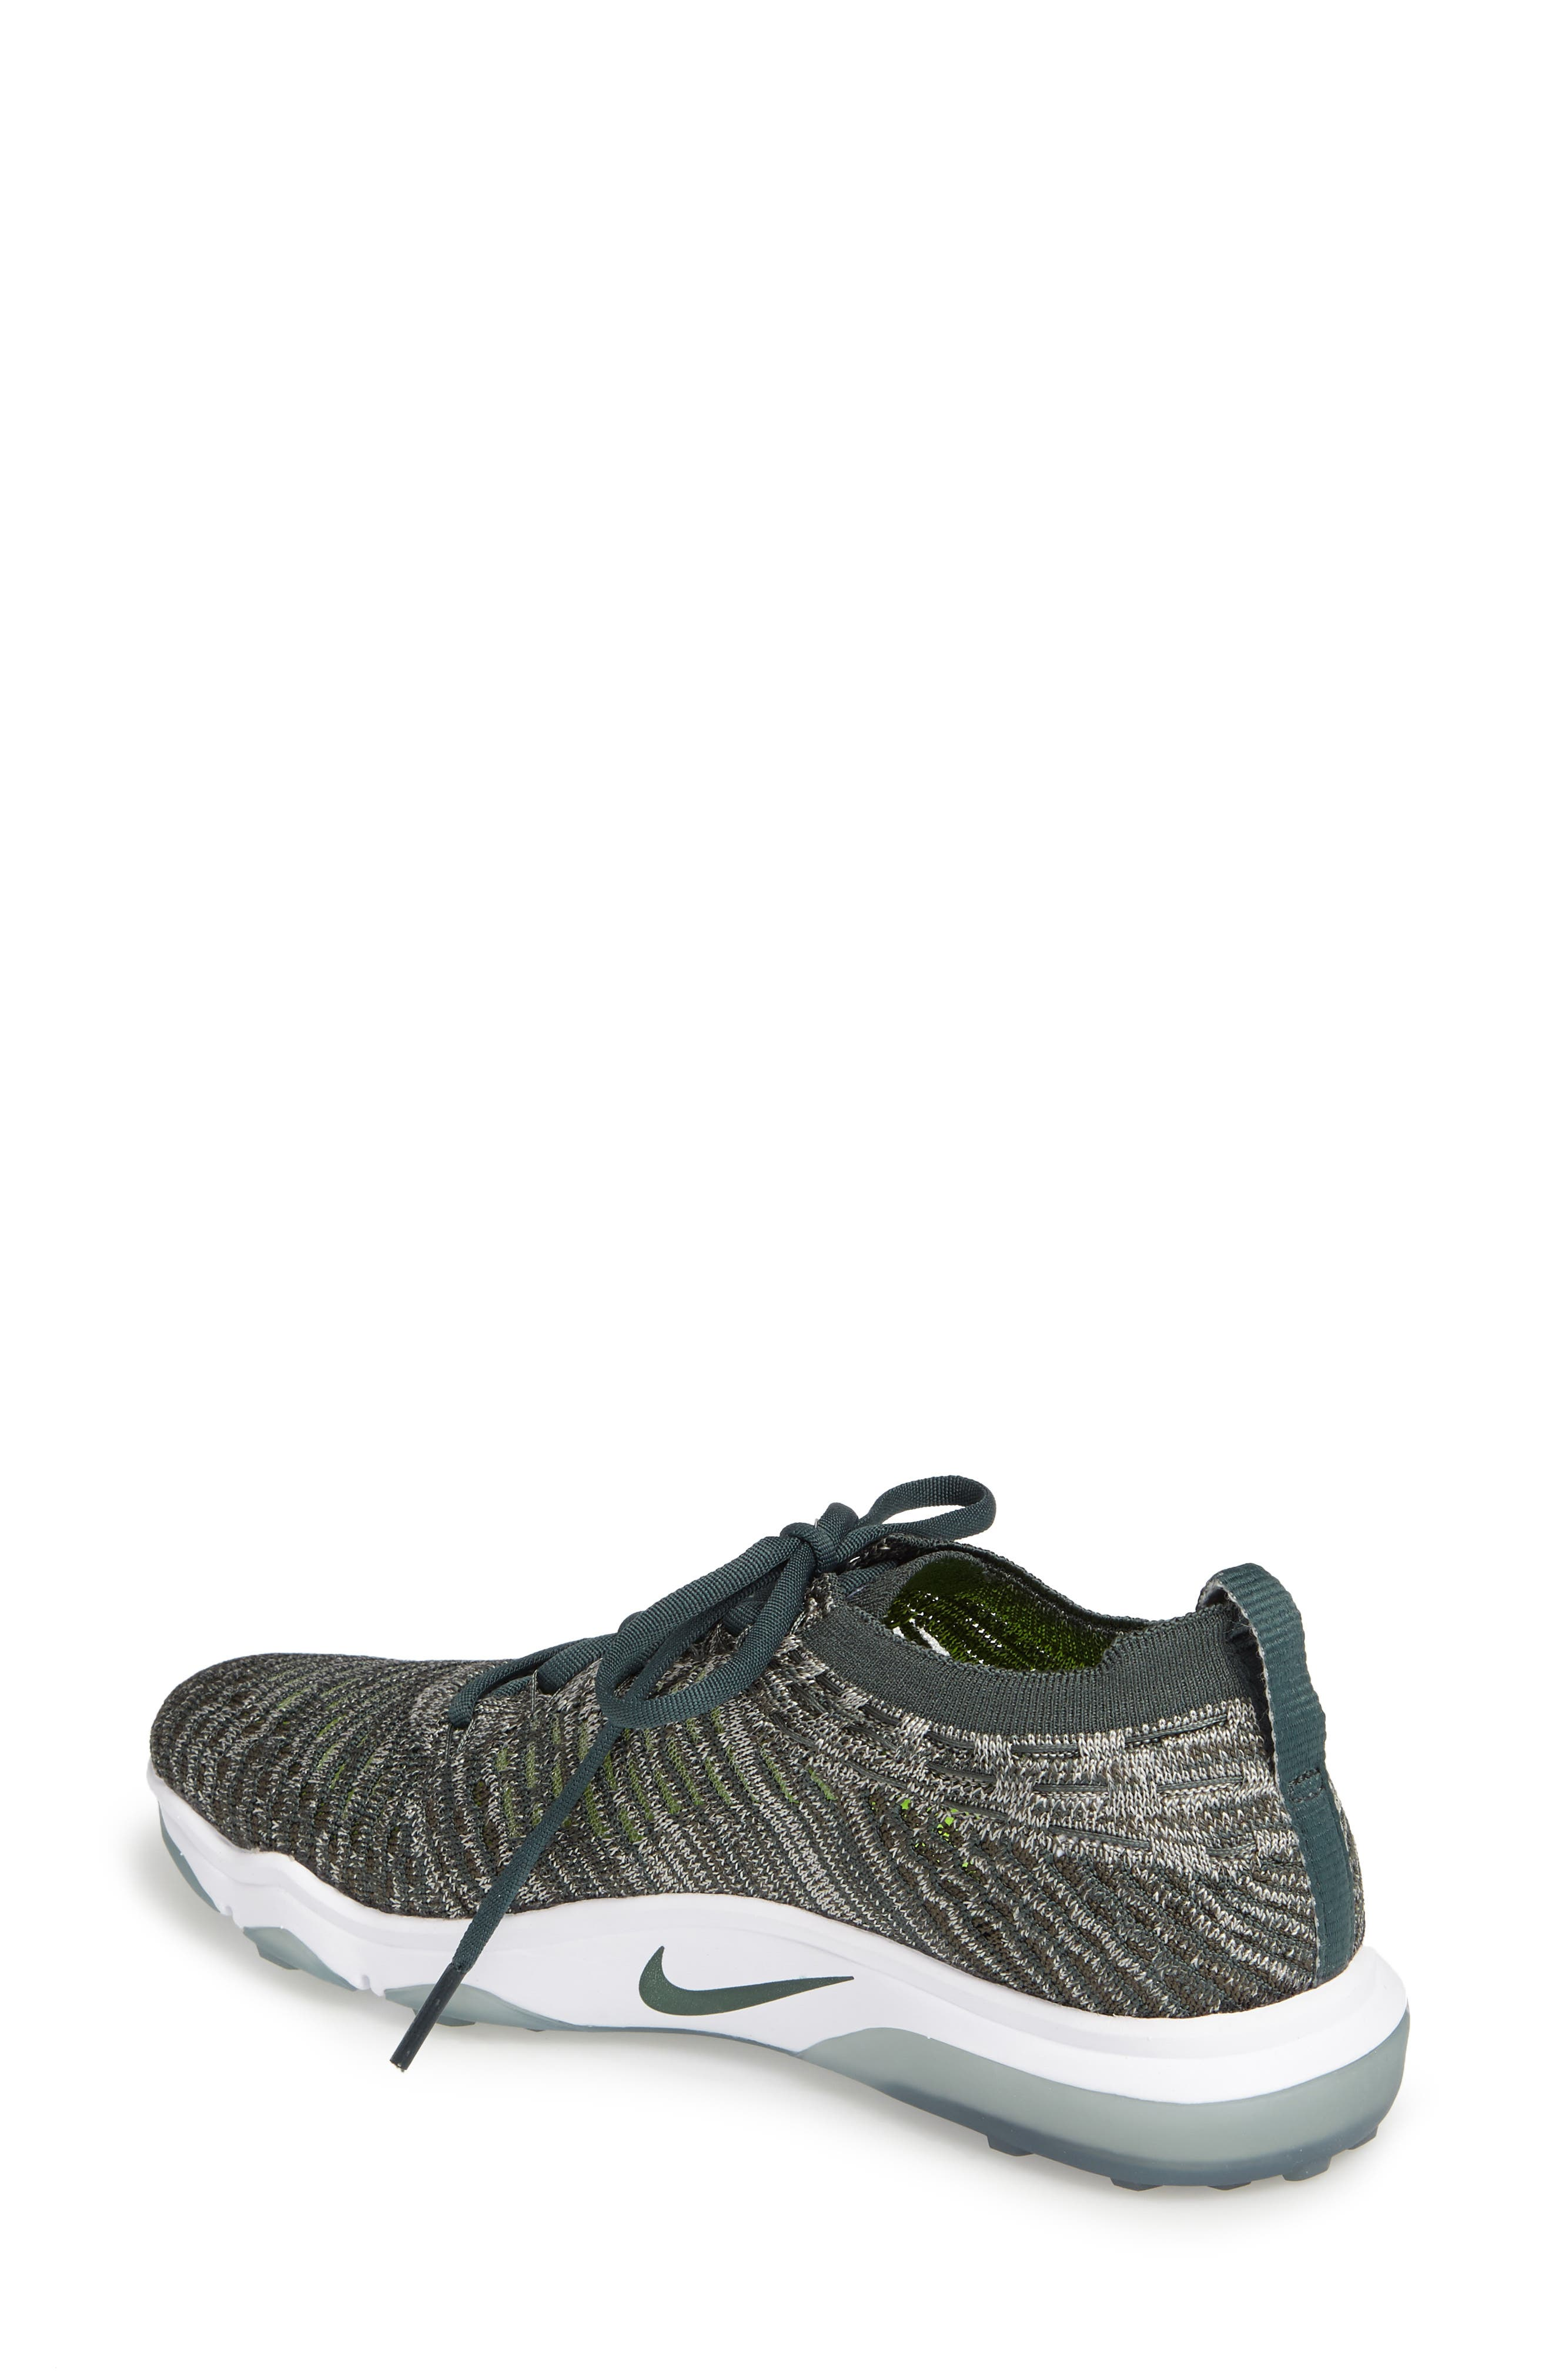 Air Zoom Fearless Flyknit Training Shoe,                             Alternate thumbnail 14, color,